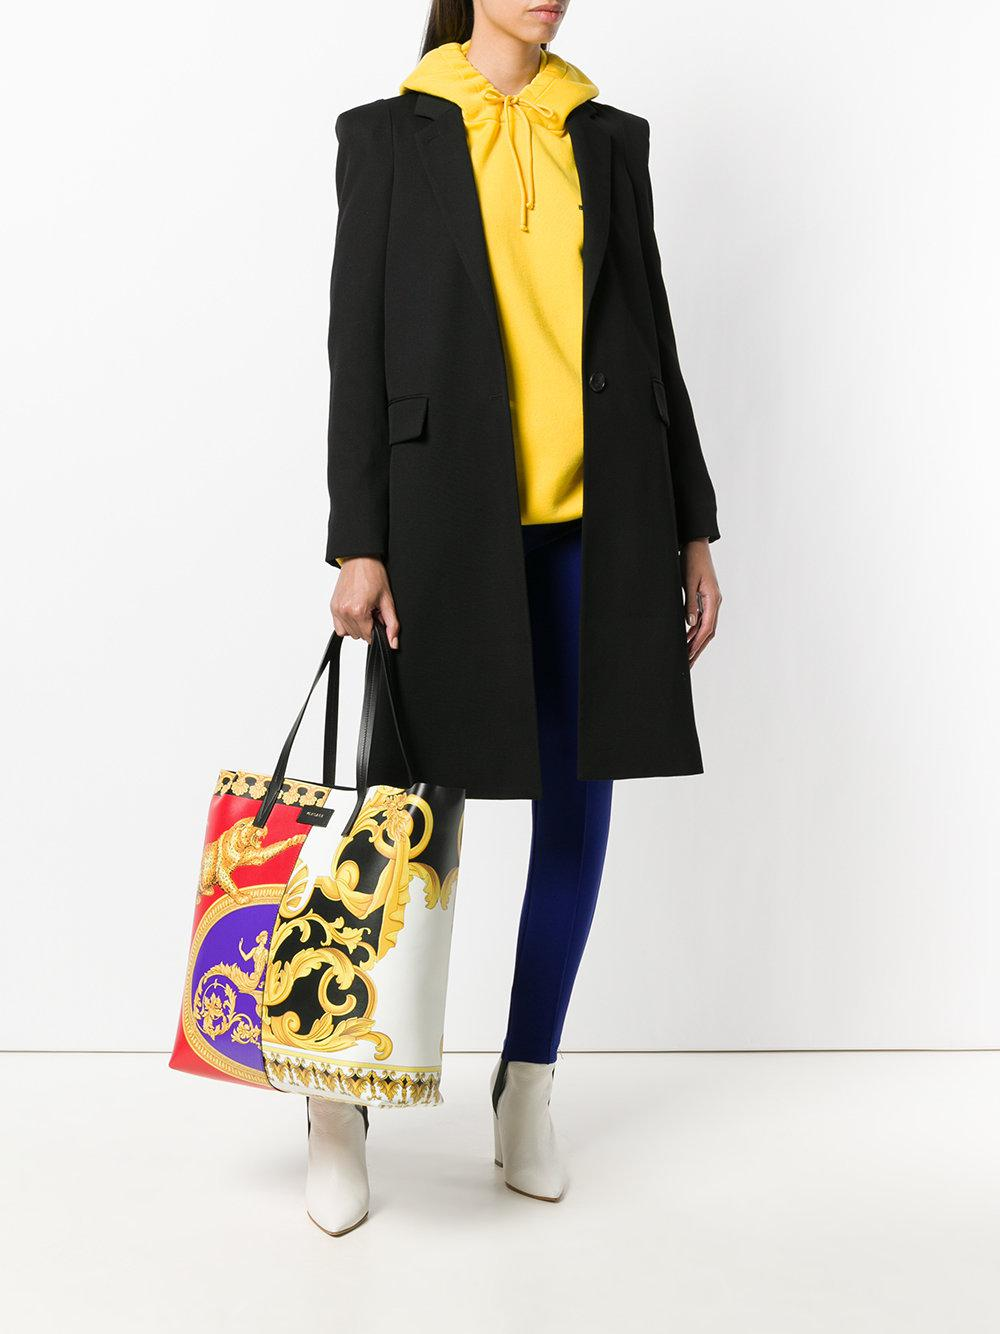 Versace Leather Pillow Talk-barocco Mix Print Tote Bag in Black